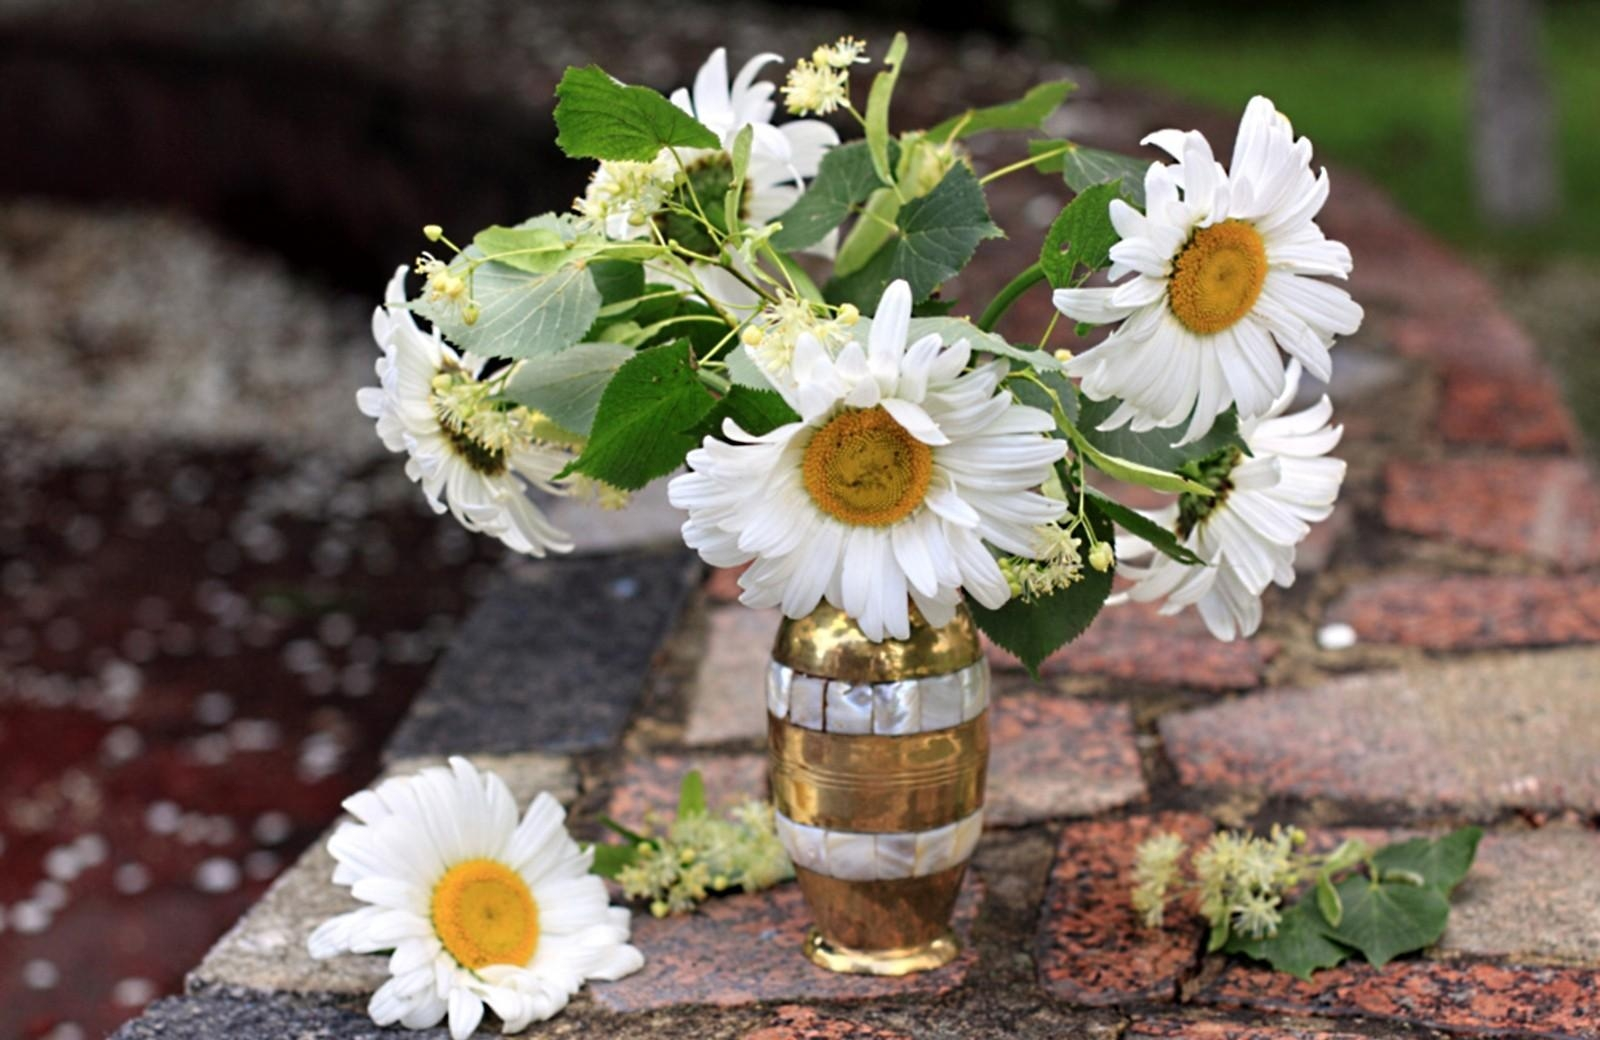 122609 download wallpaper Flowers, Camomile, Bud, Bouquet, Vase screensavers and pictures for free